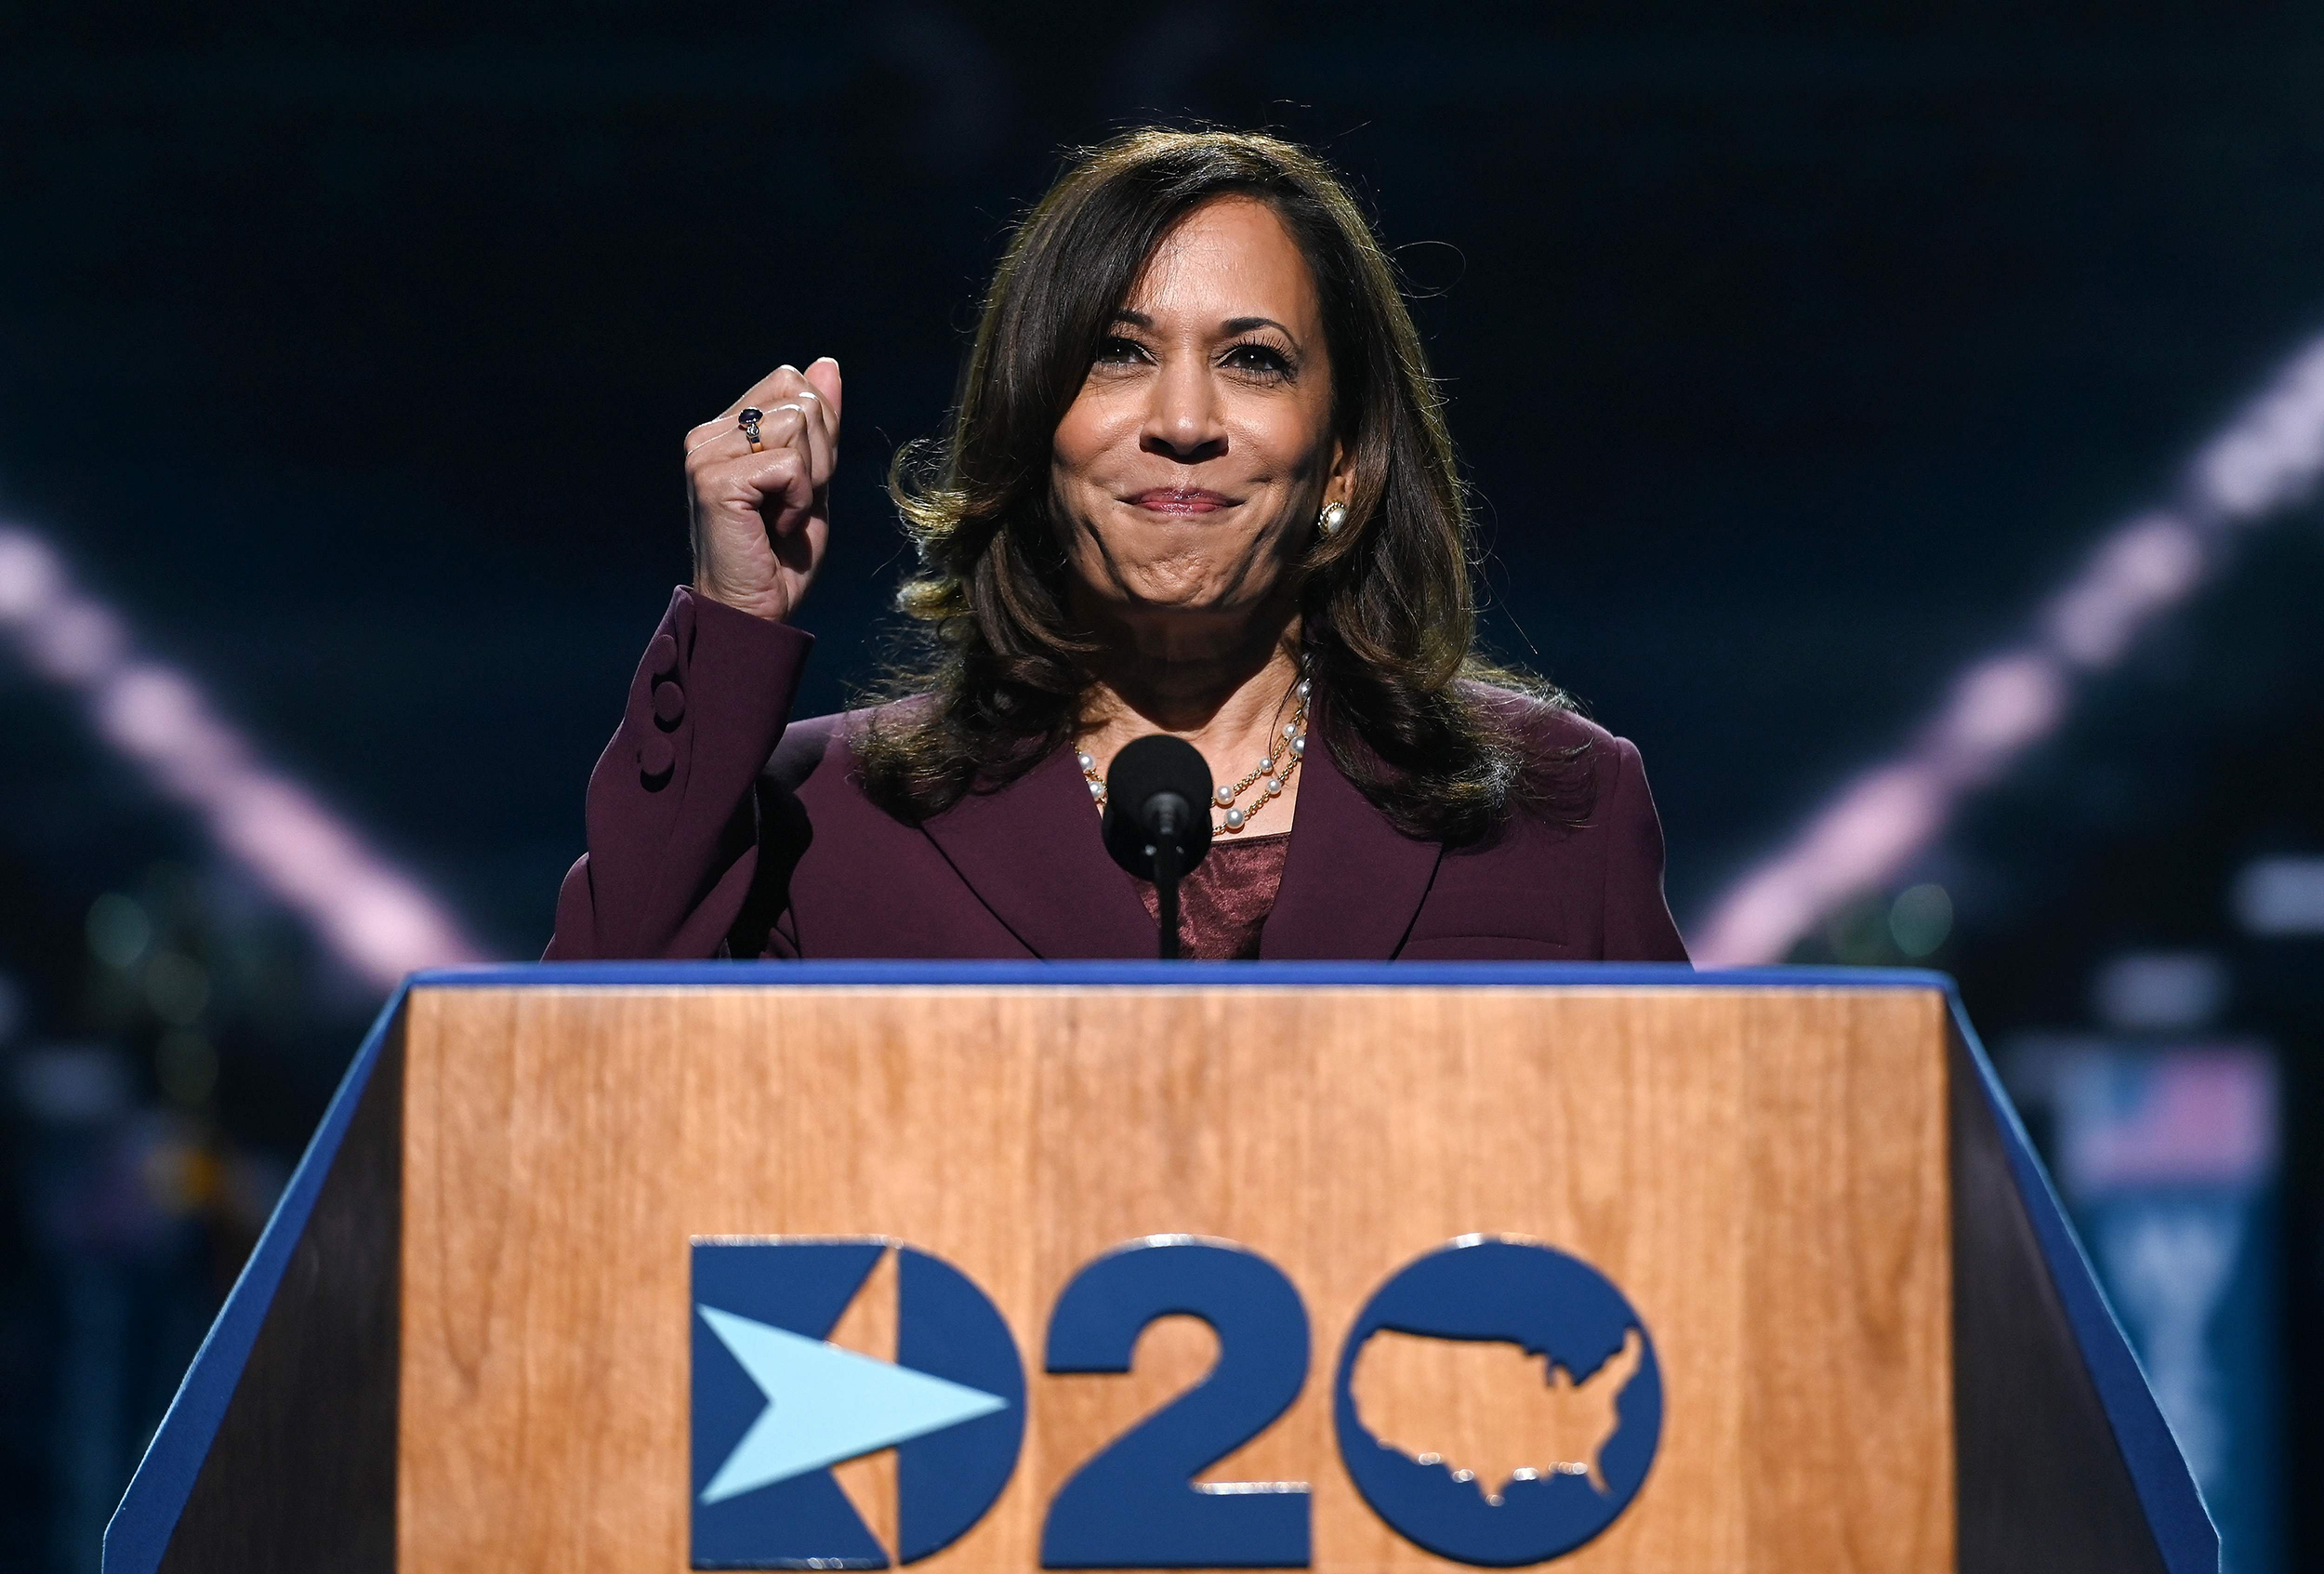 Read The Full Speech Kamala Harris Remarks To The 2020 Democratic National Convention